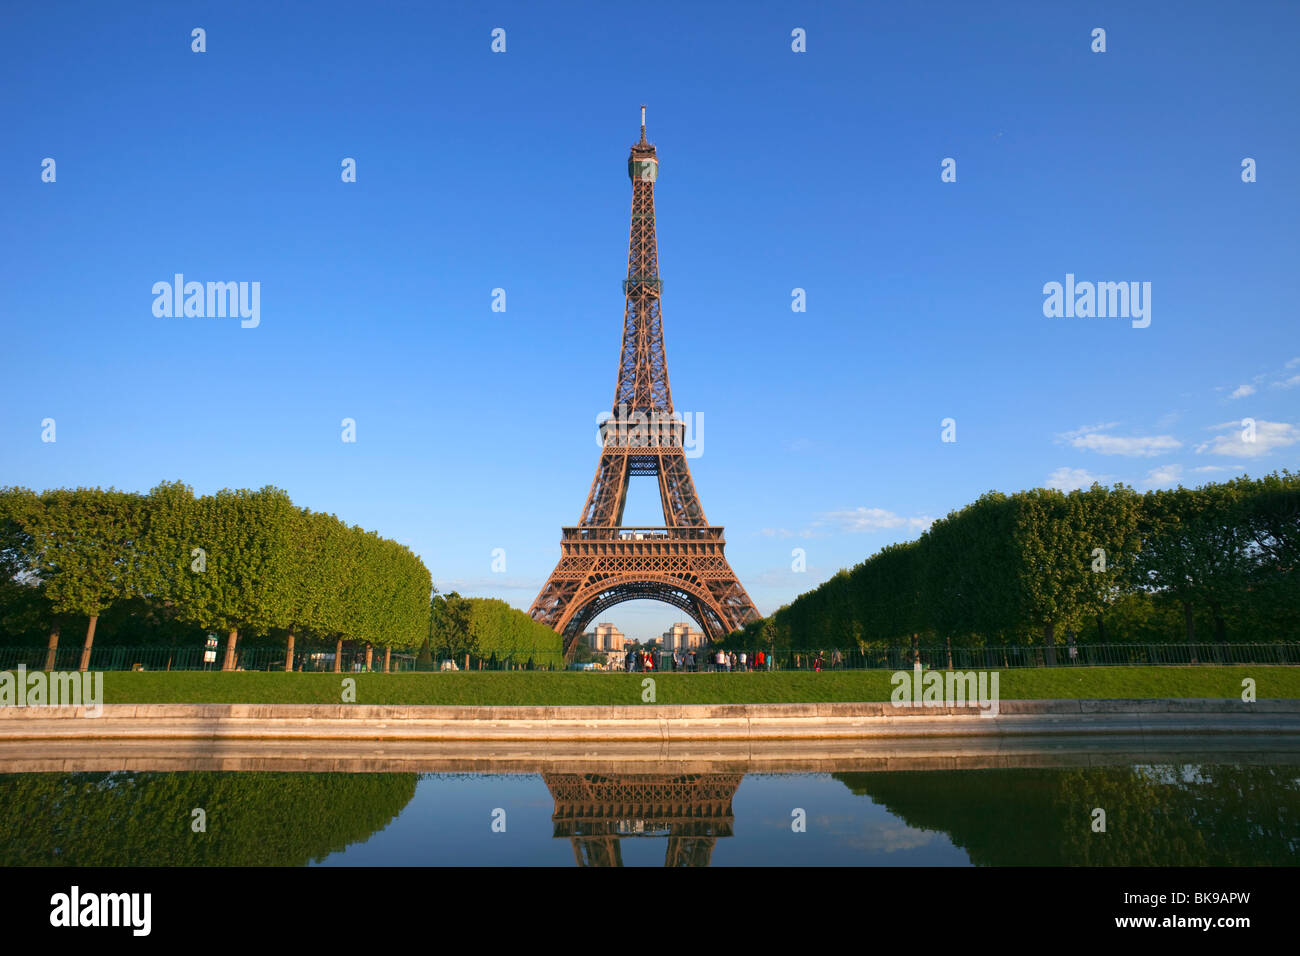 Reflection Of A Tower In Water Eiffel Tower Paris France Stock Photo Alamy